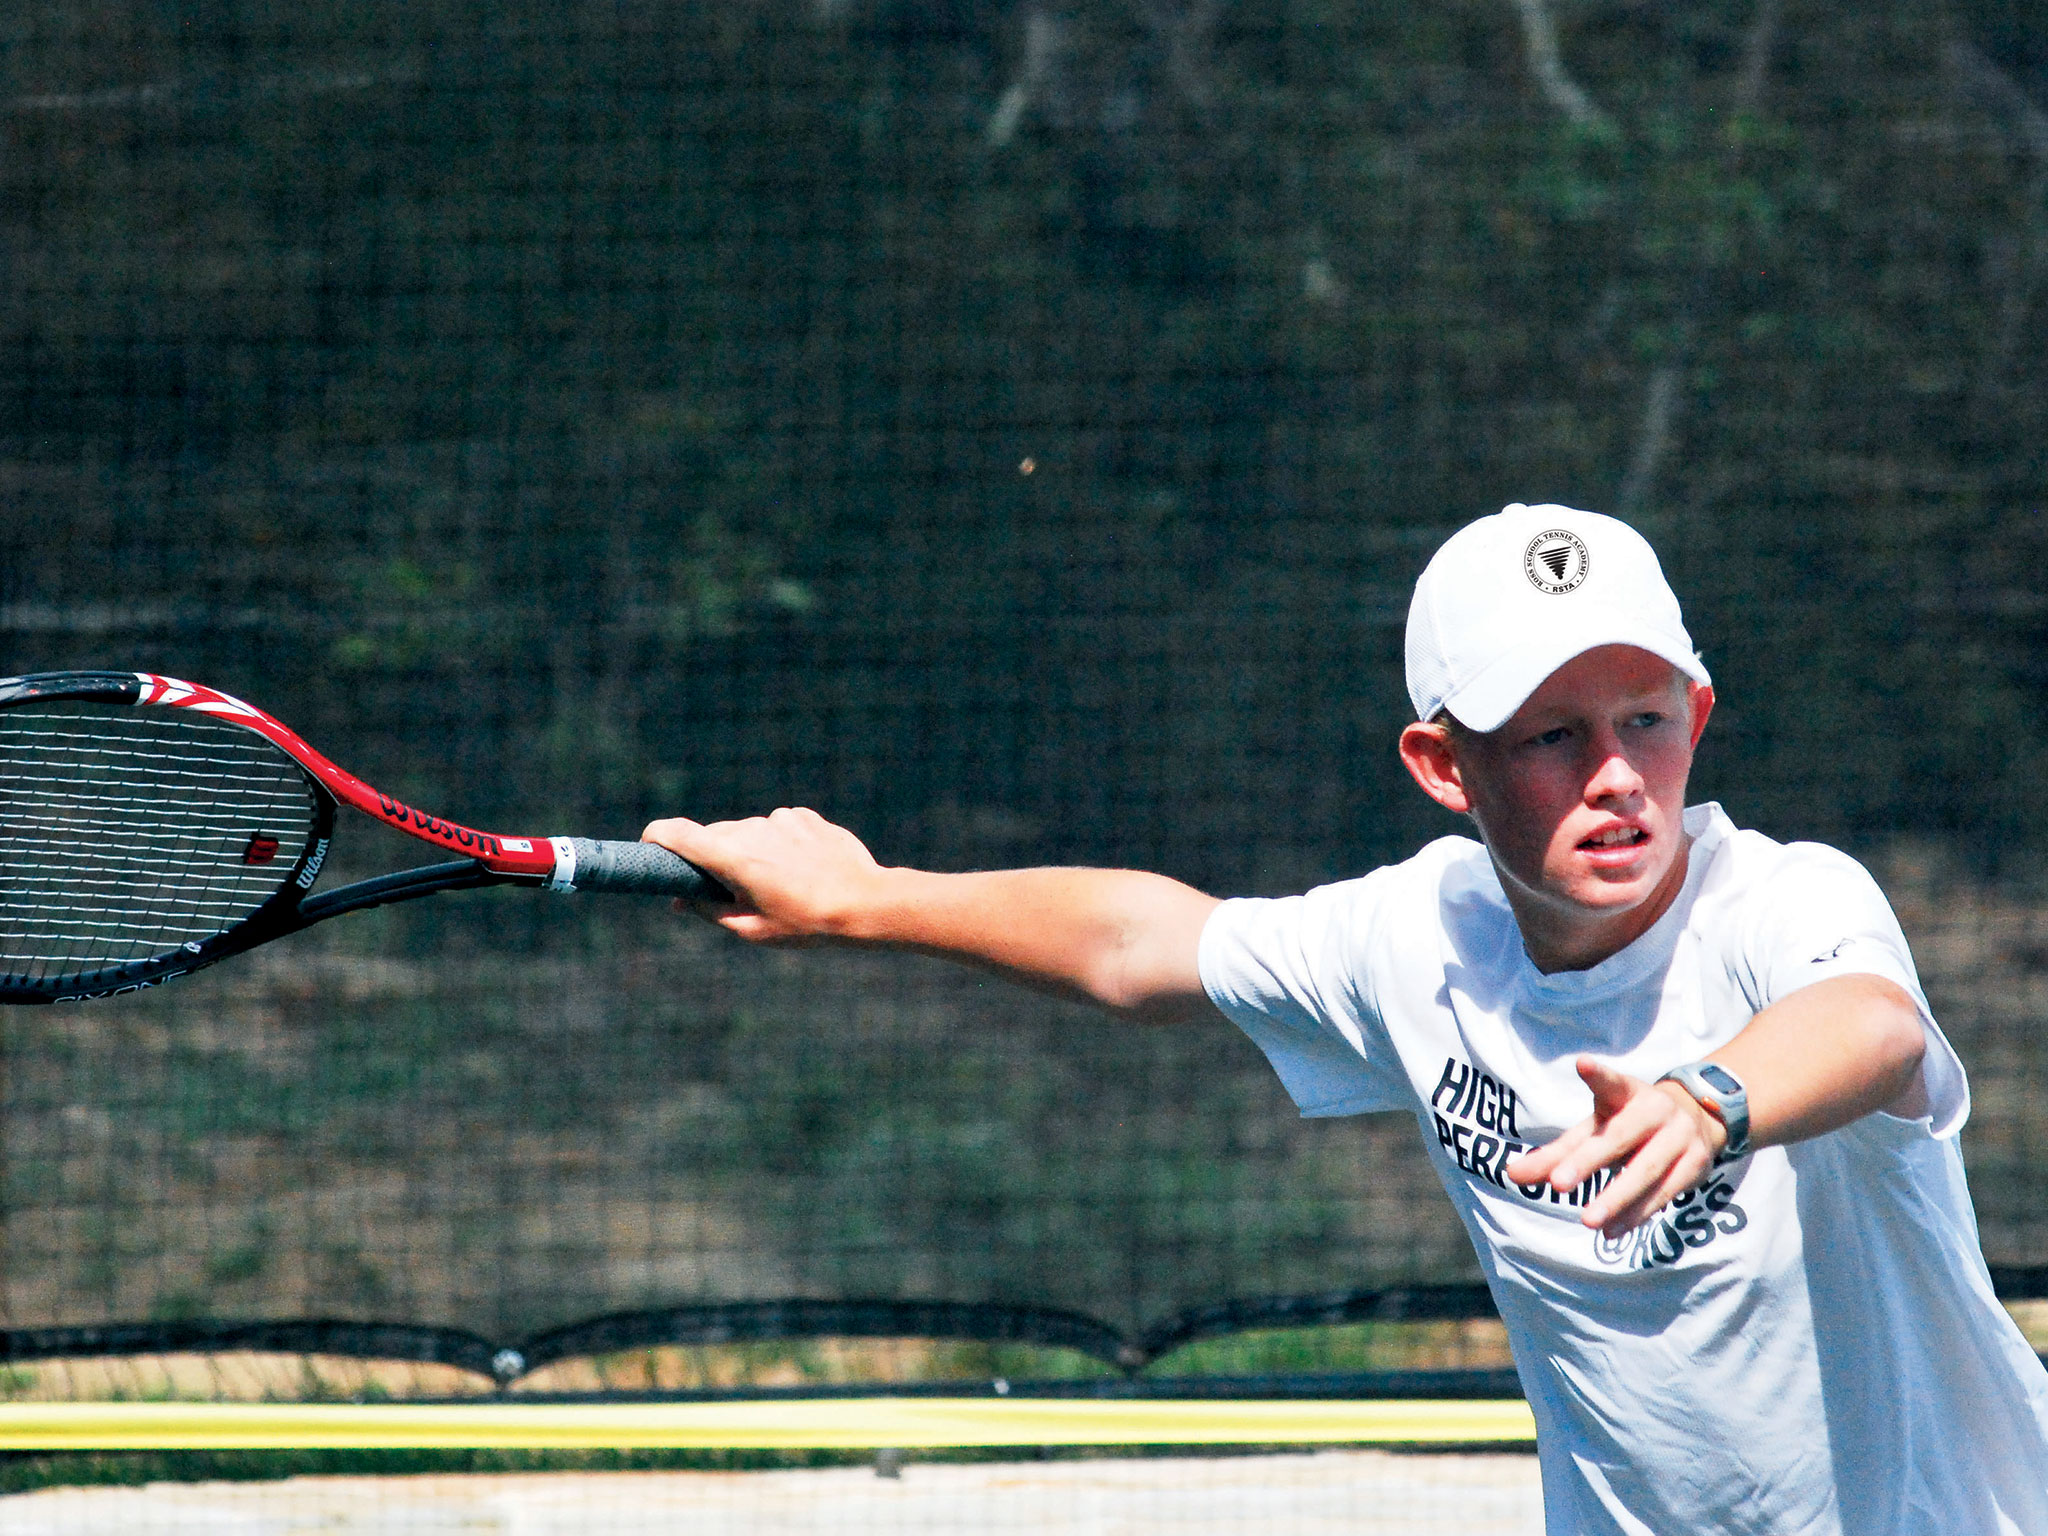 Ross Tennis Academy 06.jpg